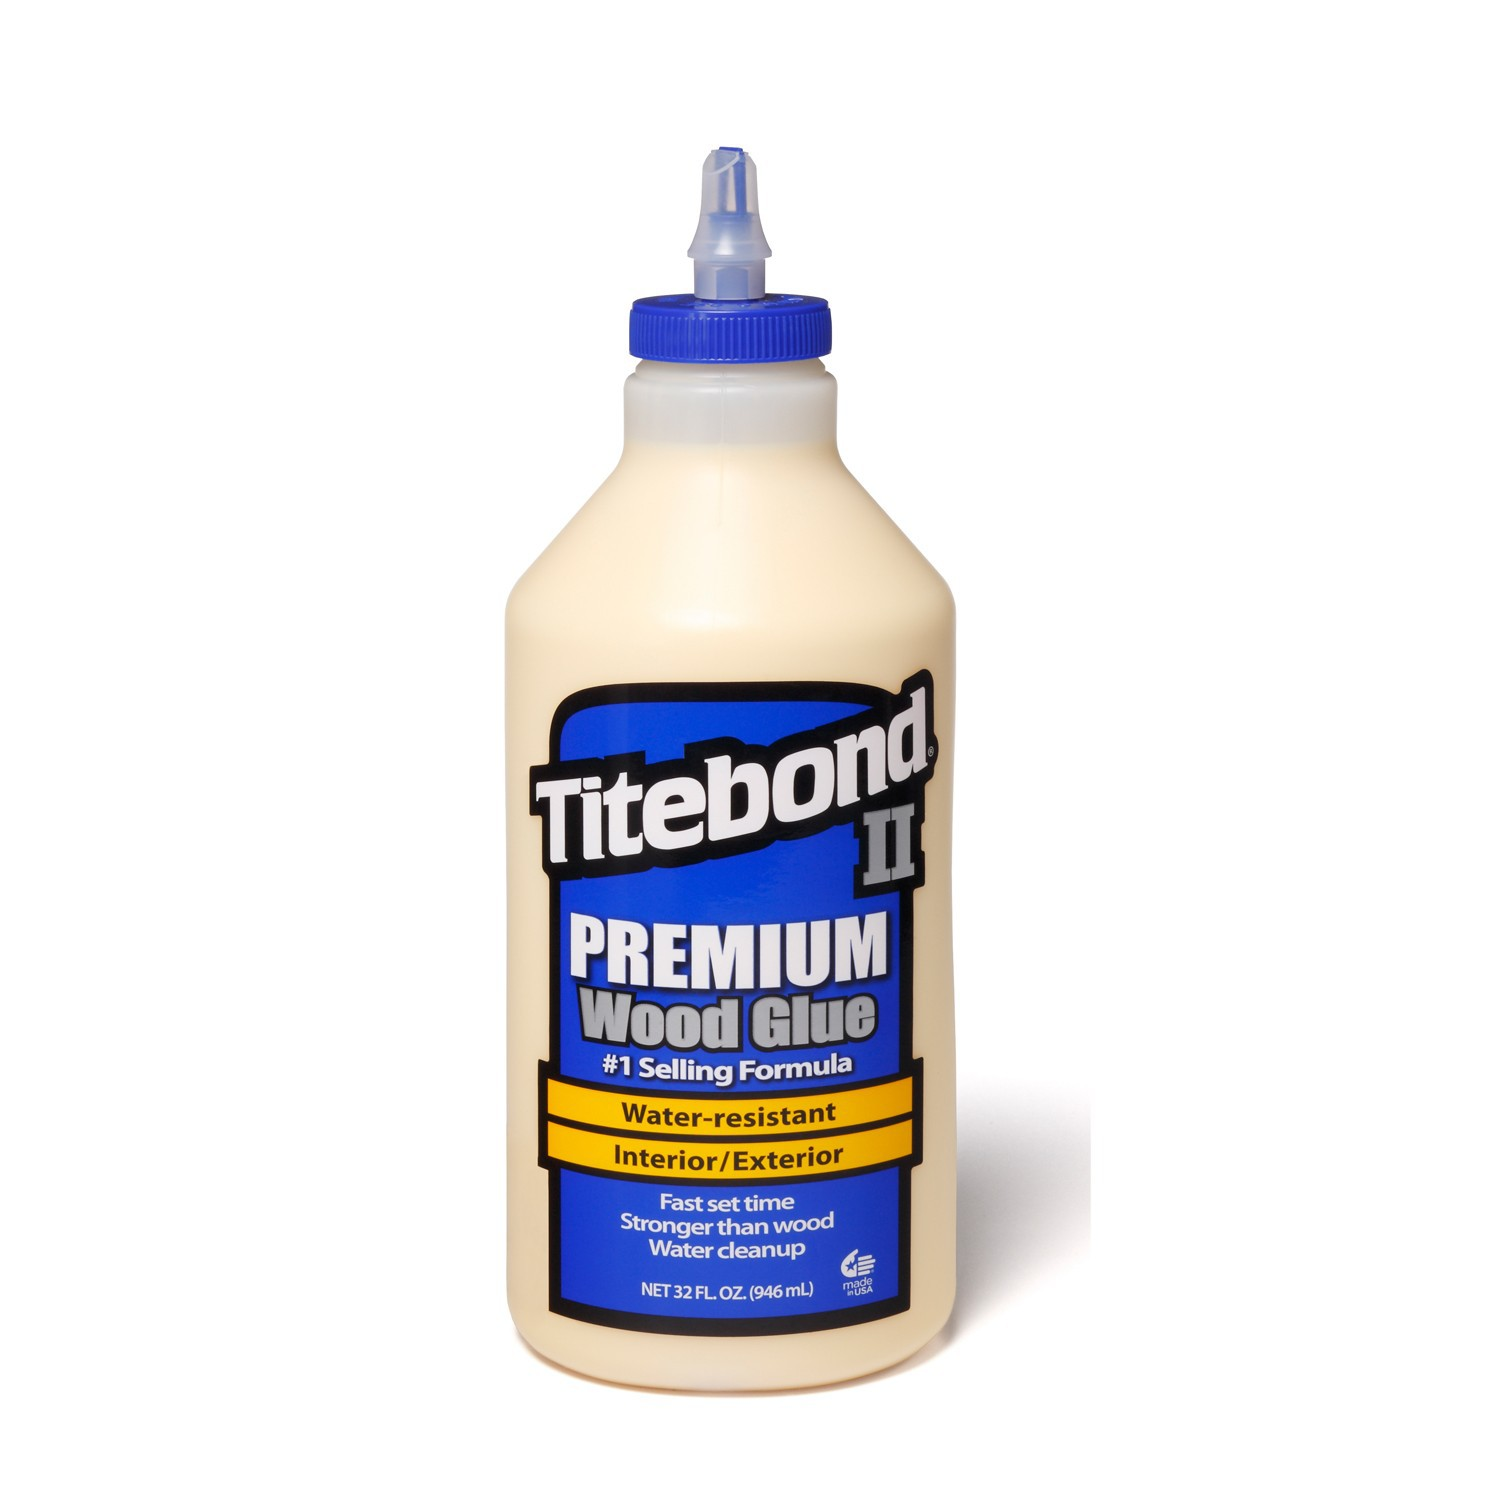 Профессиональный влагостойкий клей для дерева Titebond II Premium Wood Glue 946мл